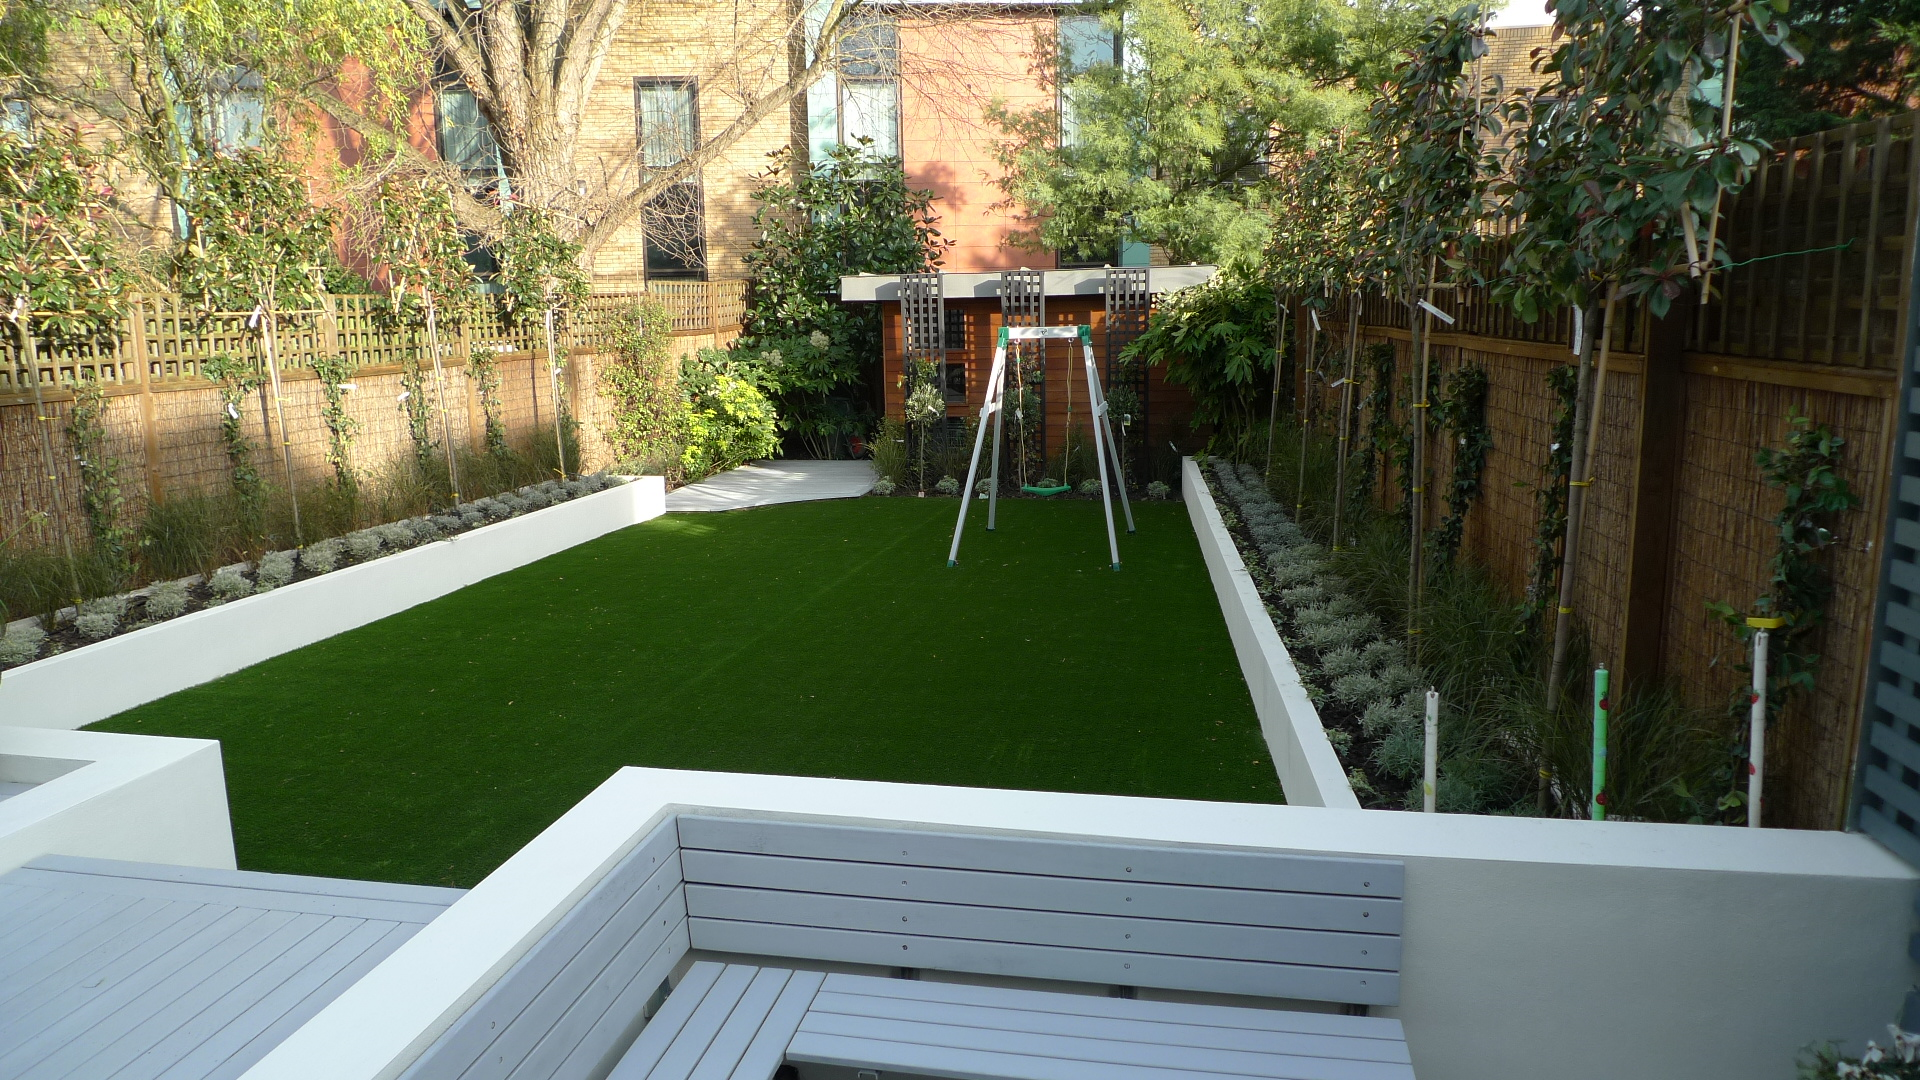 Modern garden design ideas london london garden design for Garden design new build house